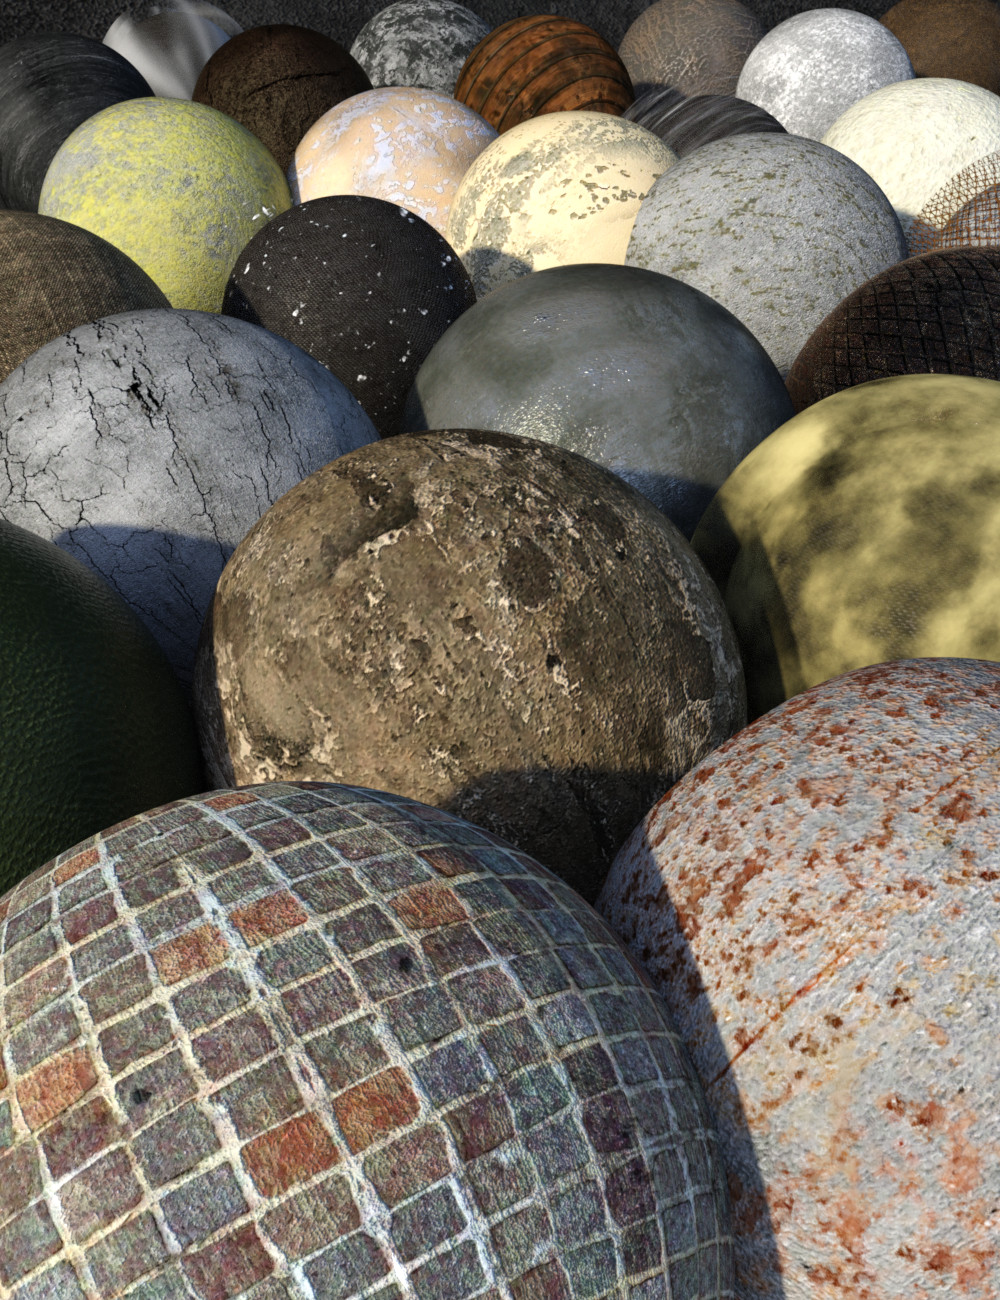 FSL Weathered Shaders for Iray by: Fuseling, 3D Models by Daz 3D